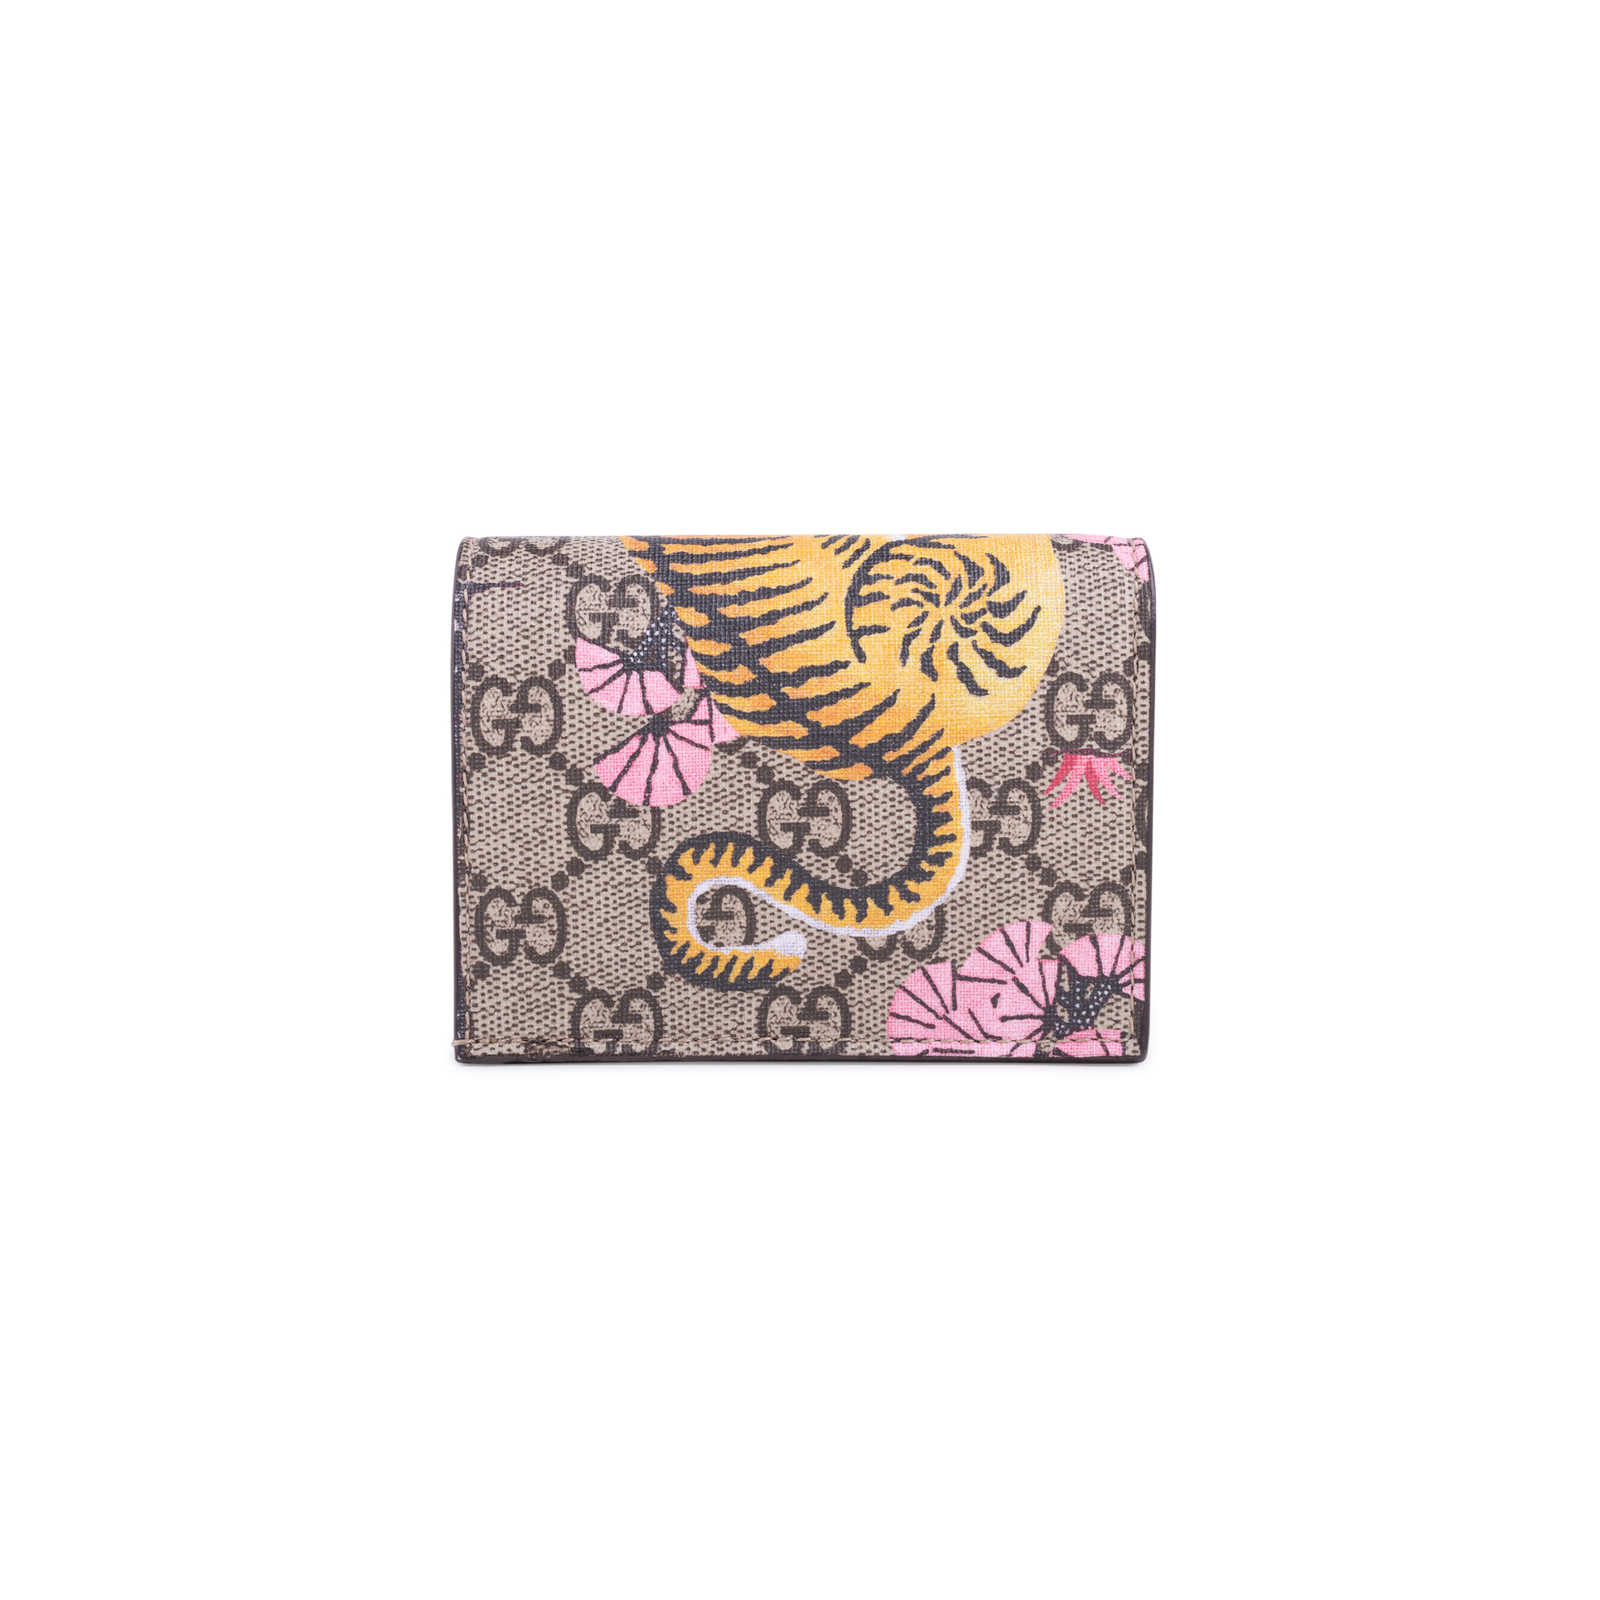 6c45358b94b8 ... Authentic Second Hand Gucci Bengal Tiger GG Supreme Compact Wallet  (PSS-627-00004 ...